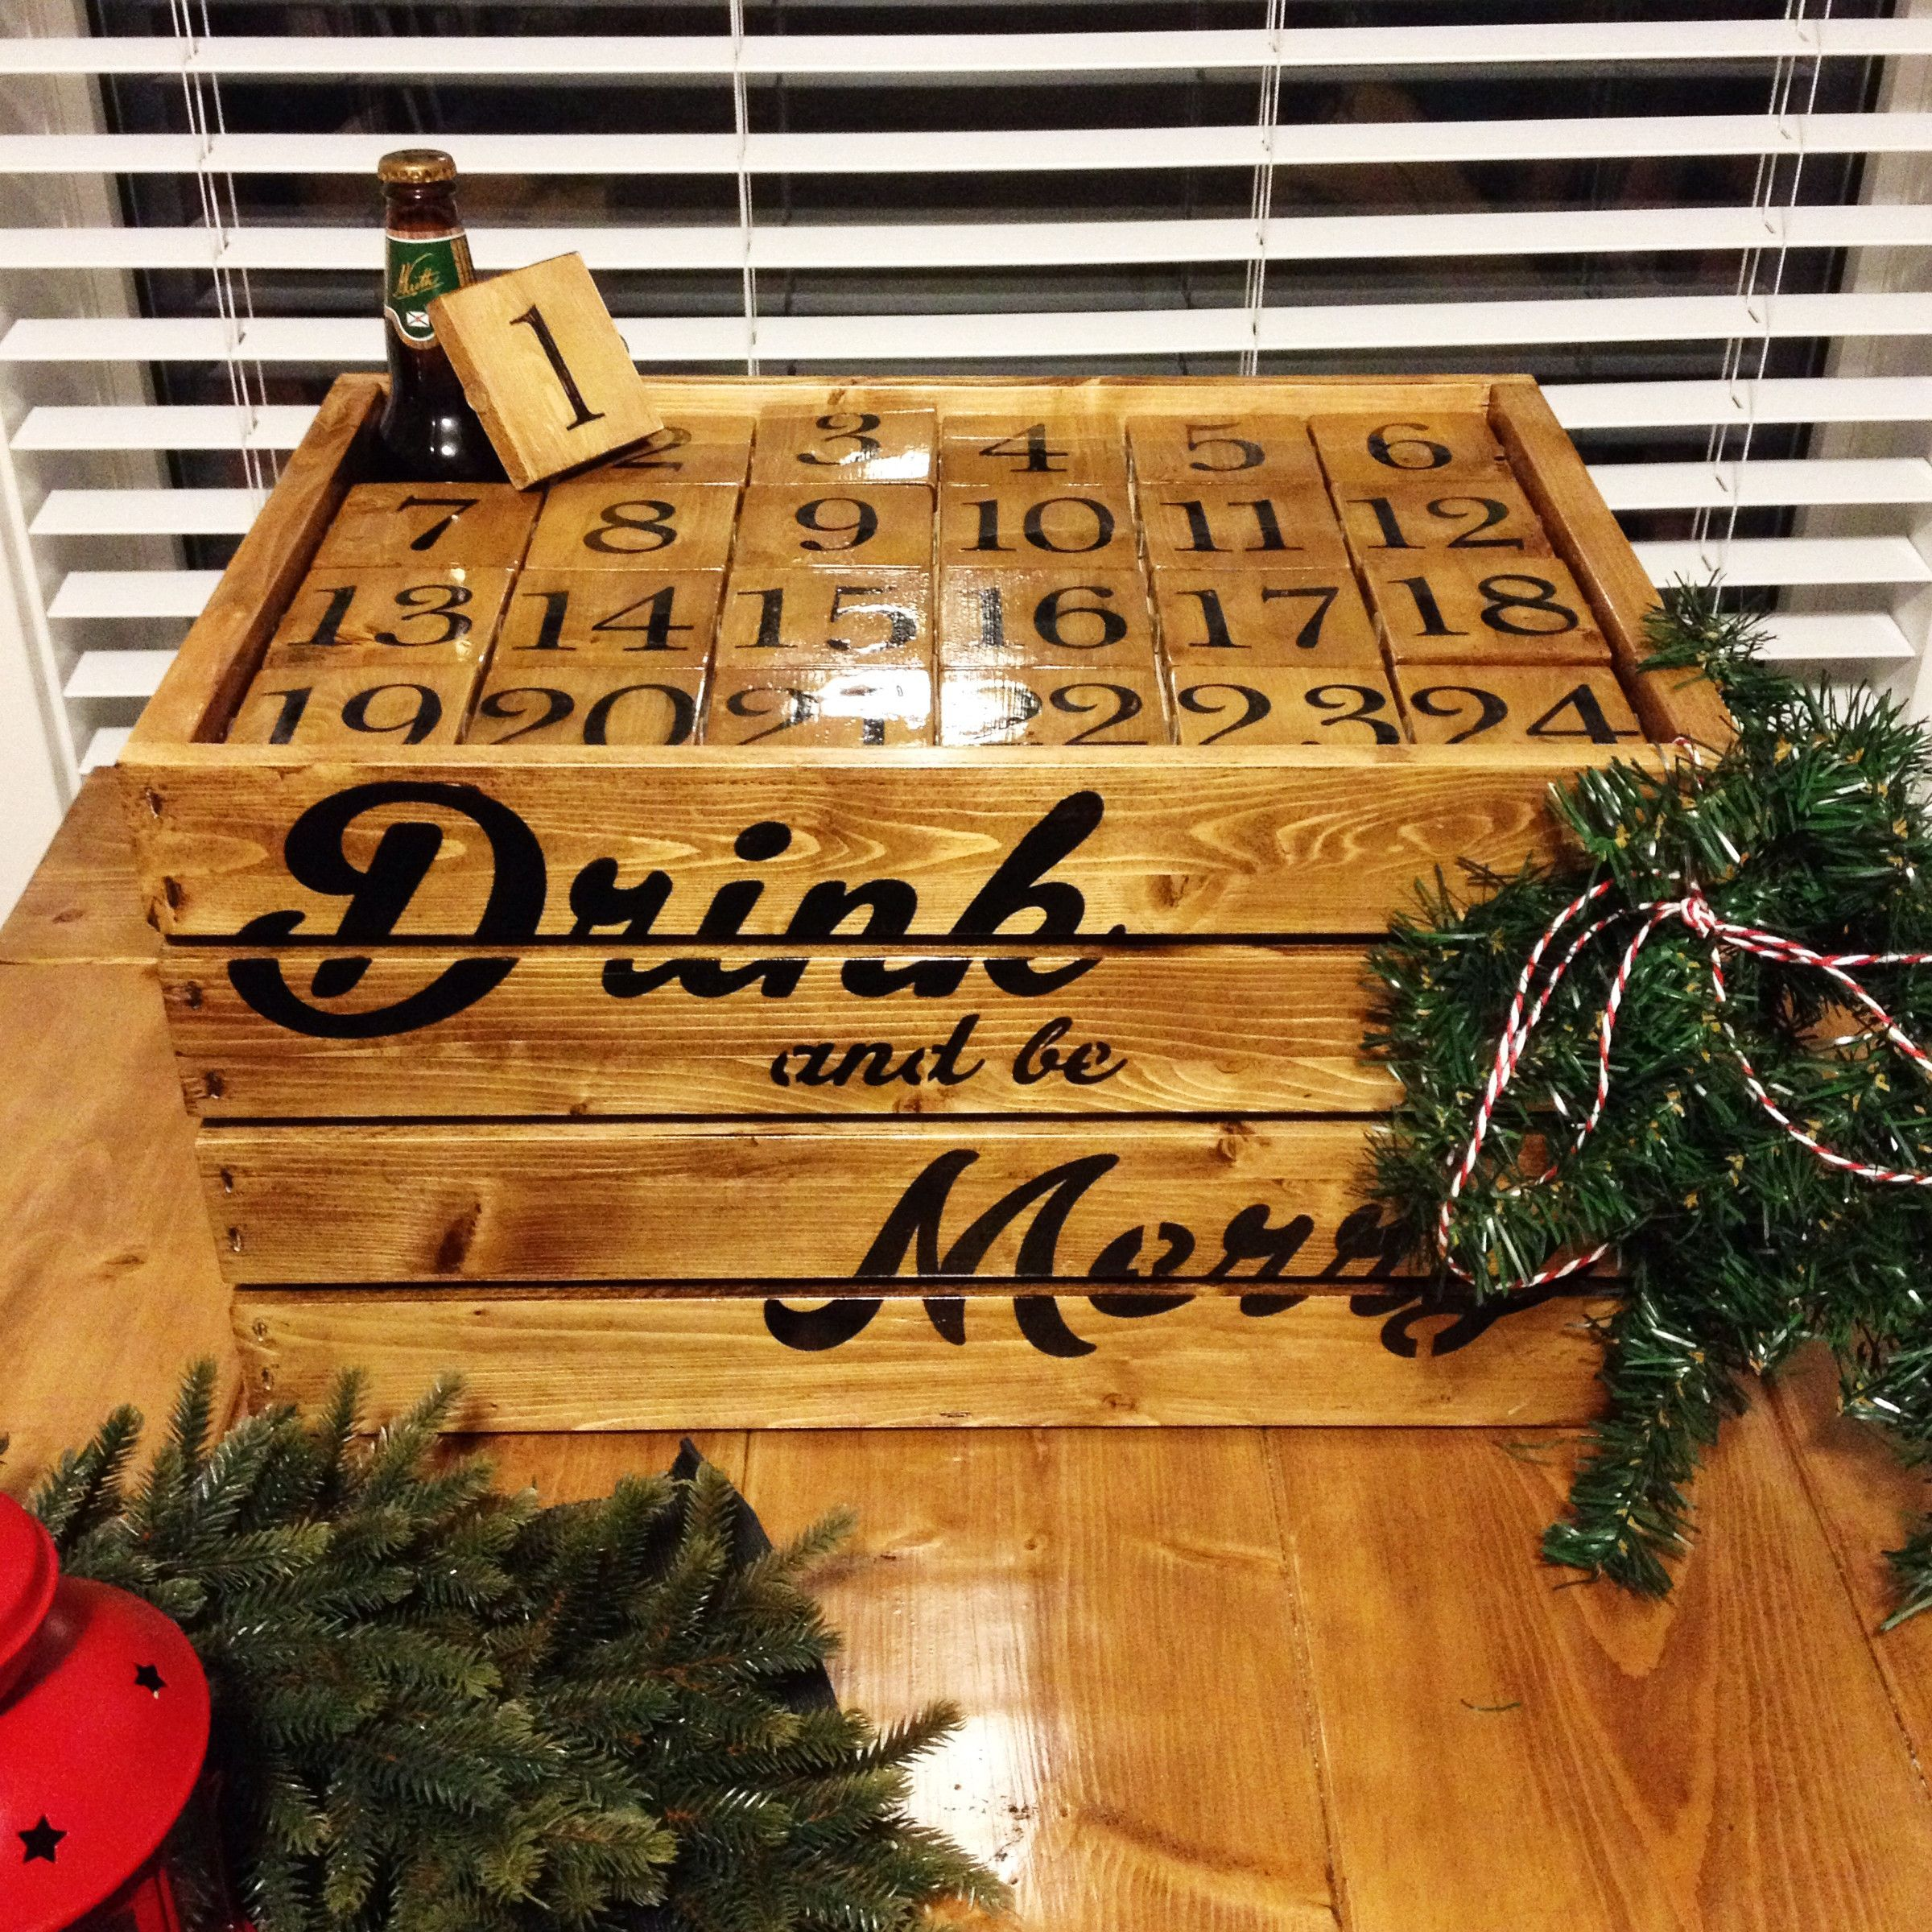 My wife made me a beer advent